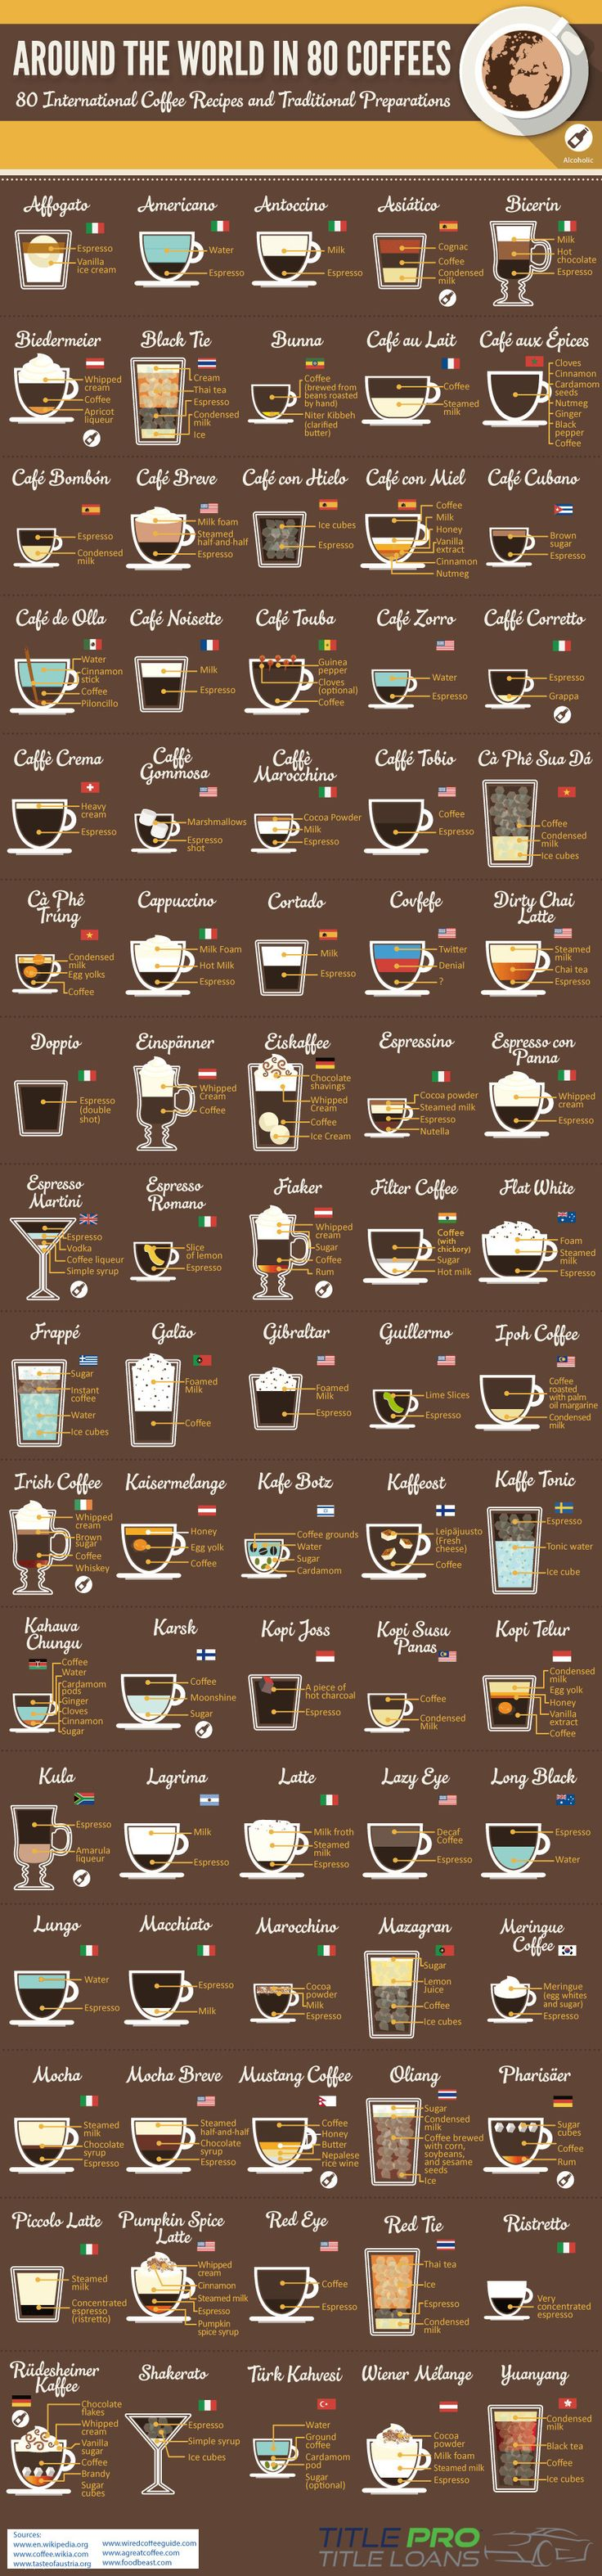 80 unique coffee concoctions from around the world